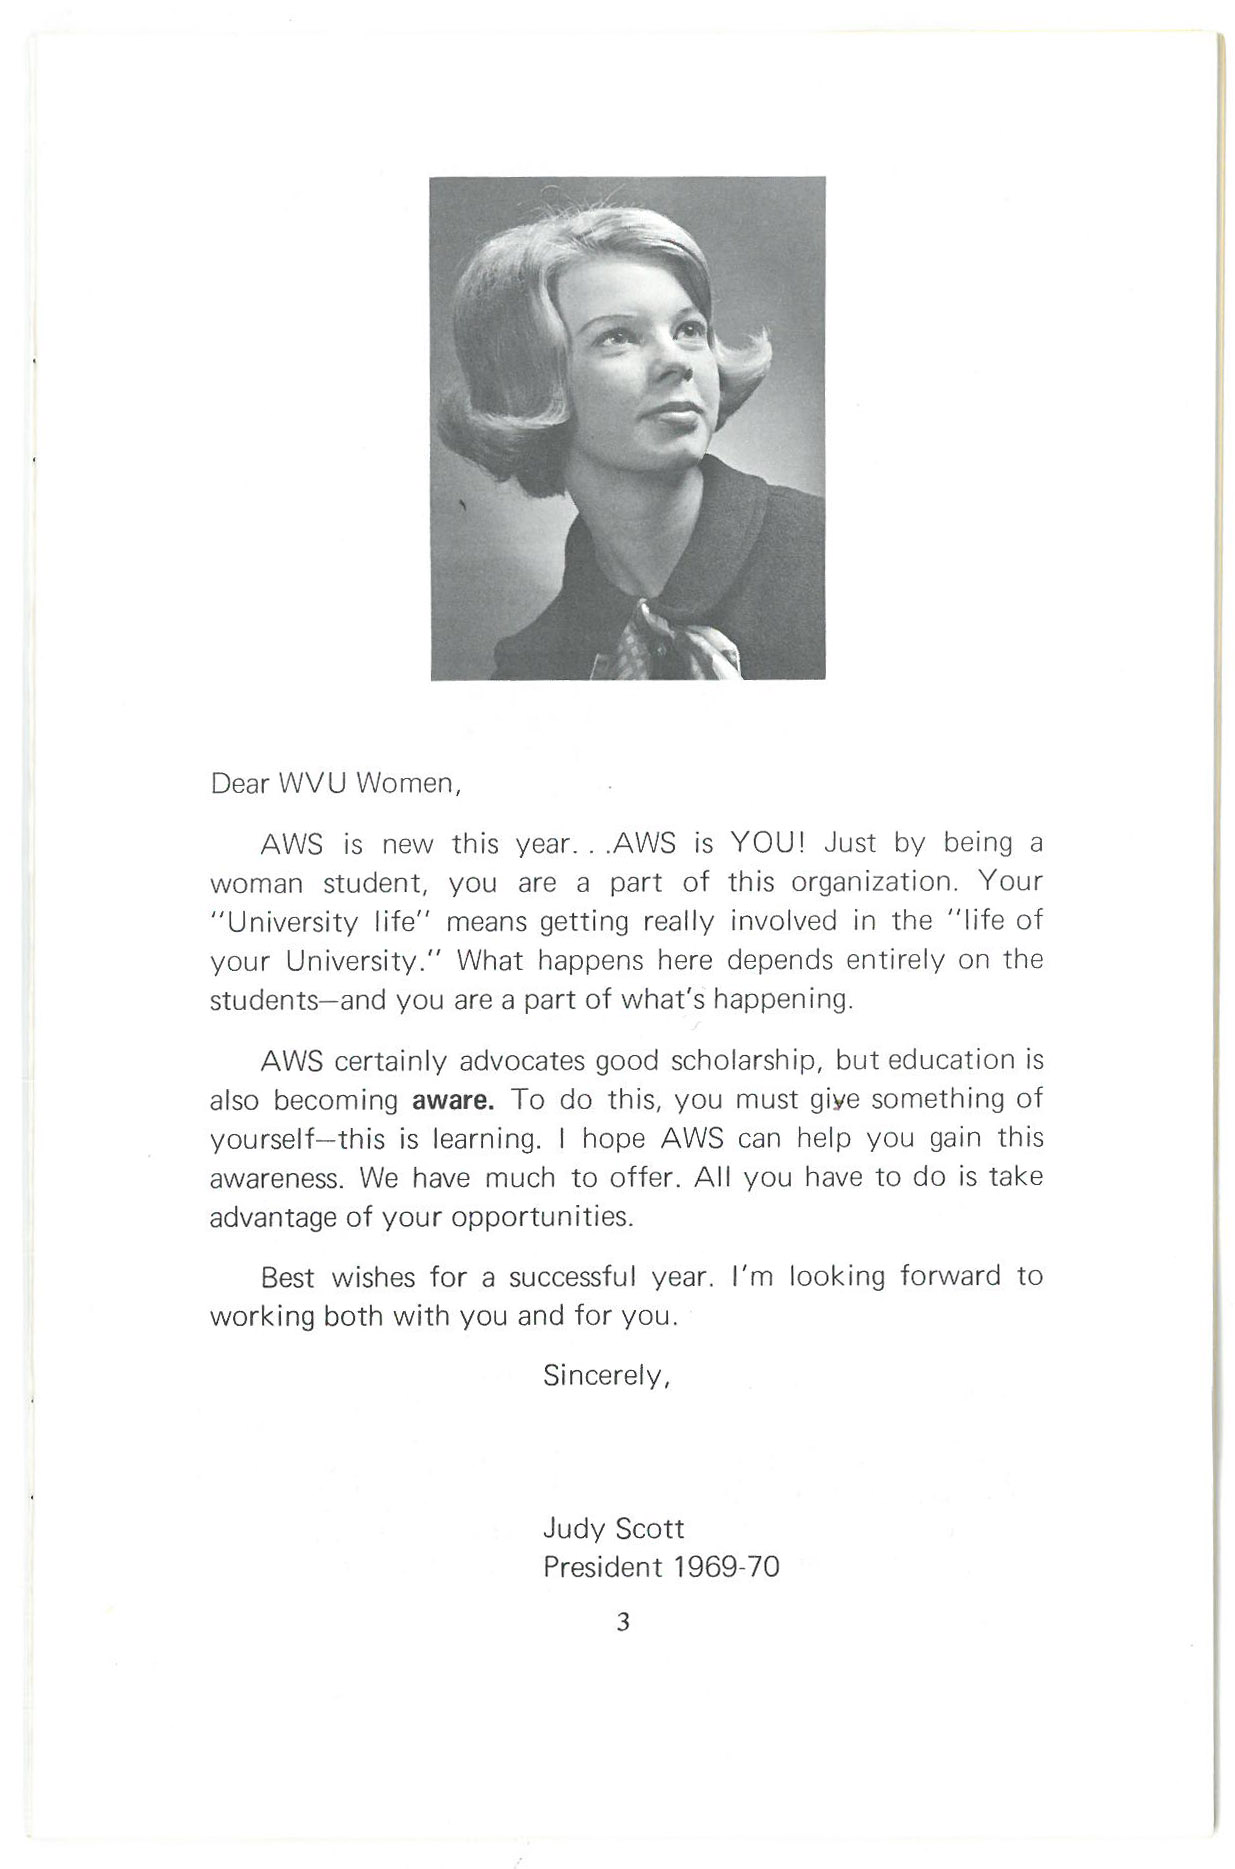 Headshot of Judy Scott, with letter about getting involved in AWS.